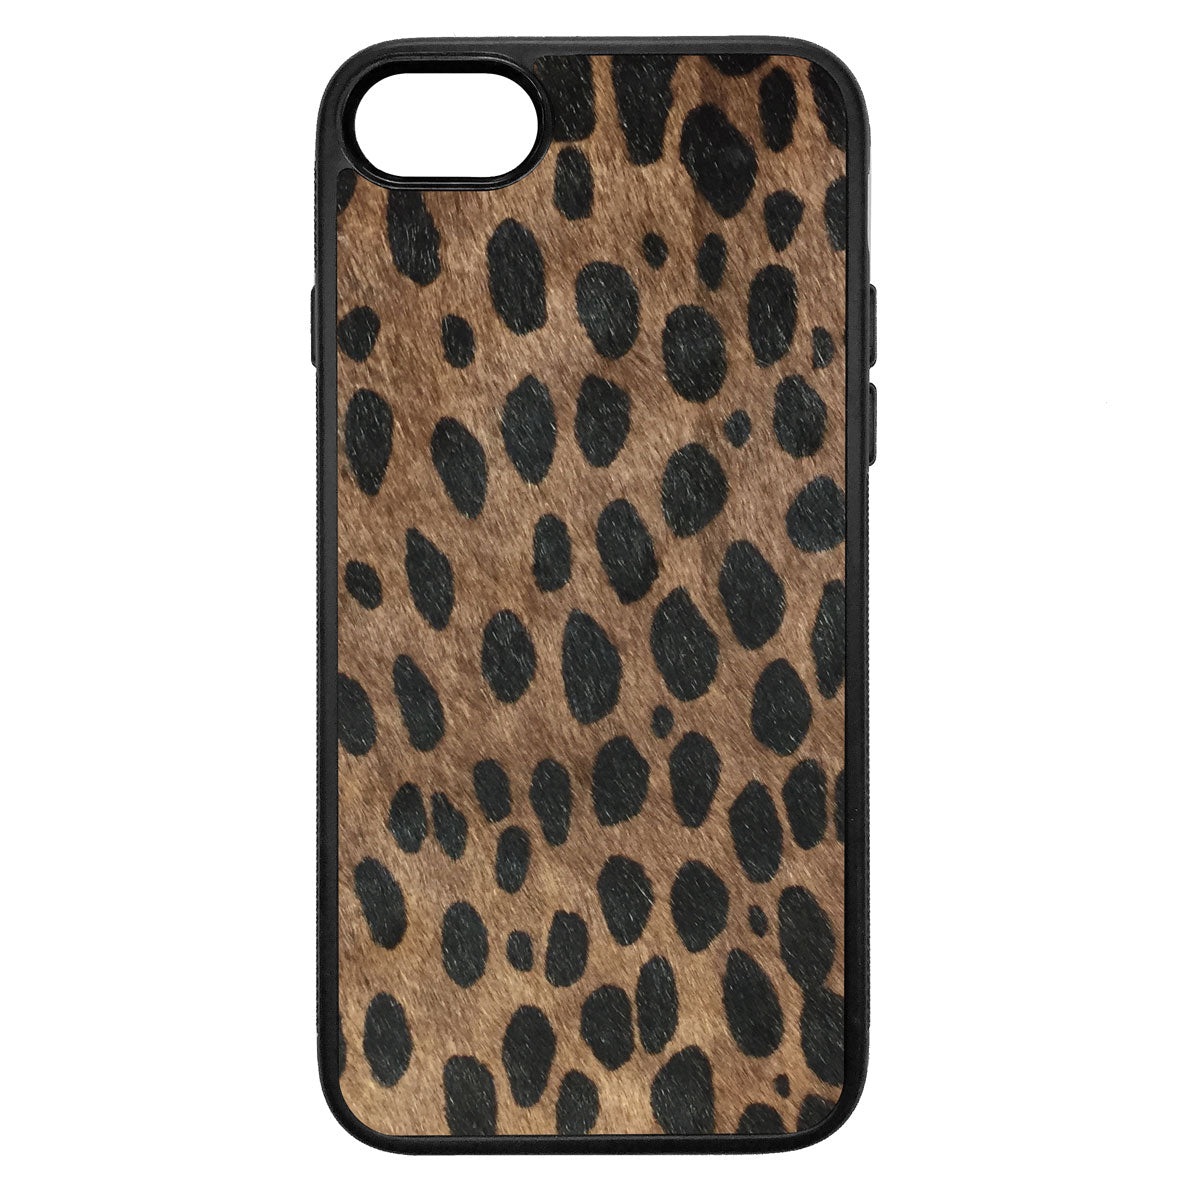 Brown Cheetah Pony Hair iPhone 8 Leather Case